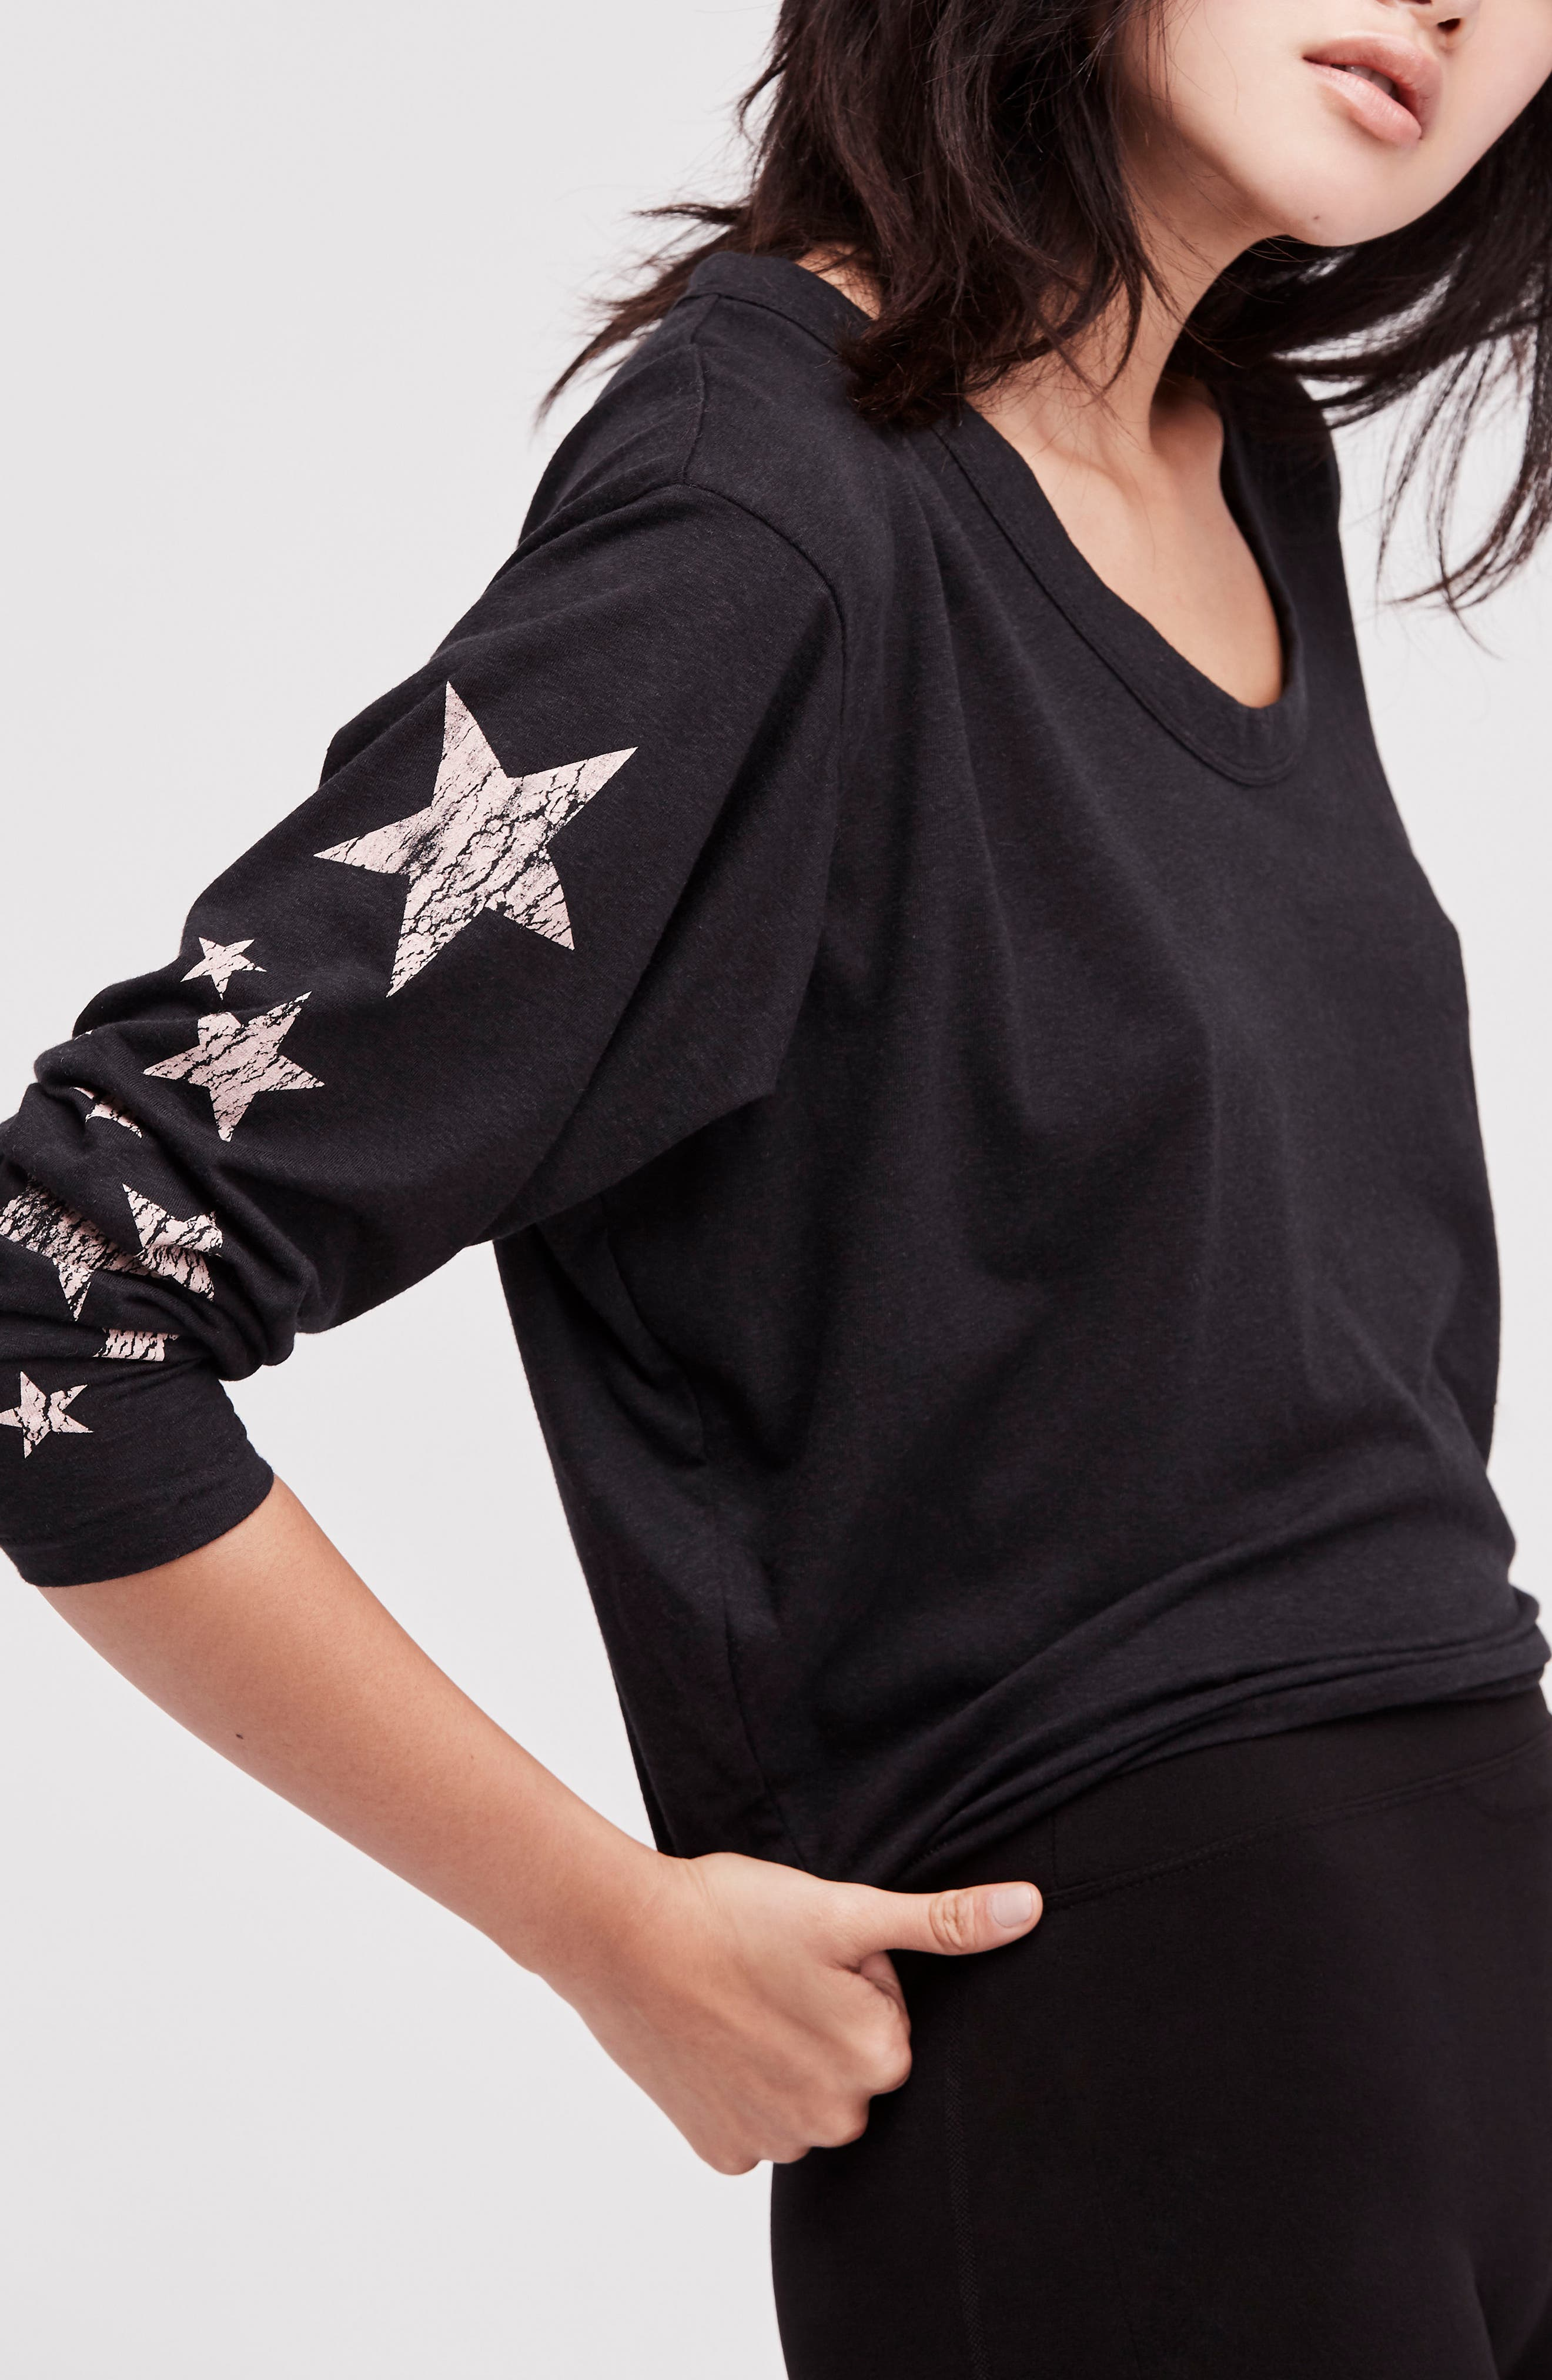 Free People Melrose Star Graphic Top,                             Alternate thumbnail 8, color,                             BLACK